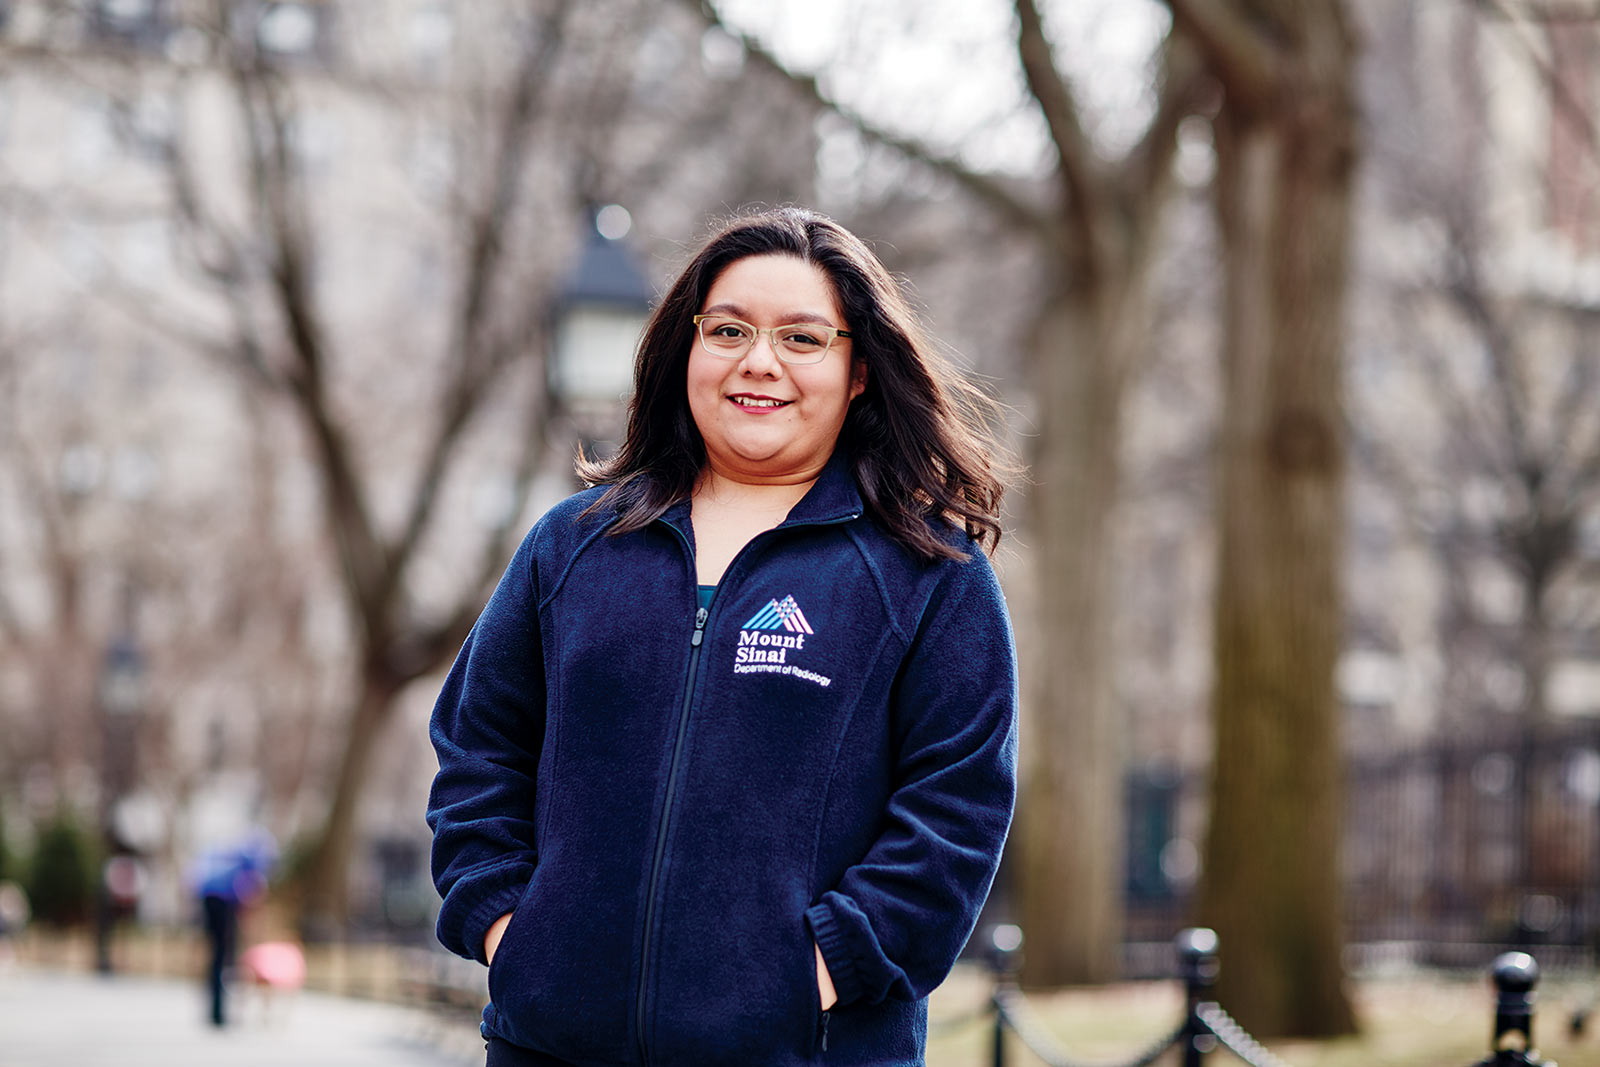 Arely Clavel '14 went on to a medical physics program at Columbia University and now works at Mount Sinai Hospital in Manhattan.